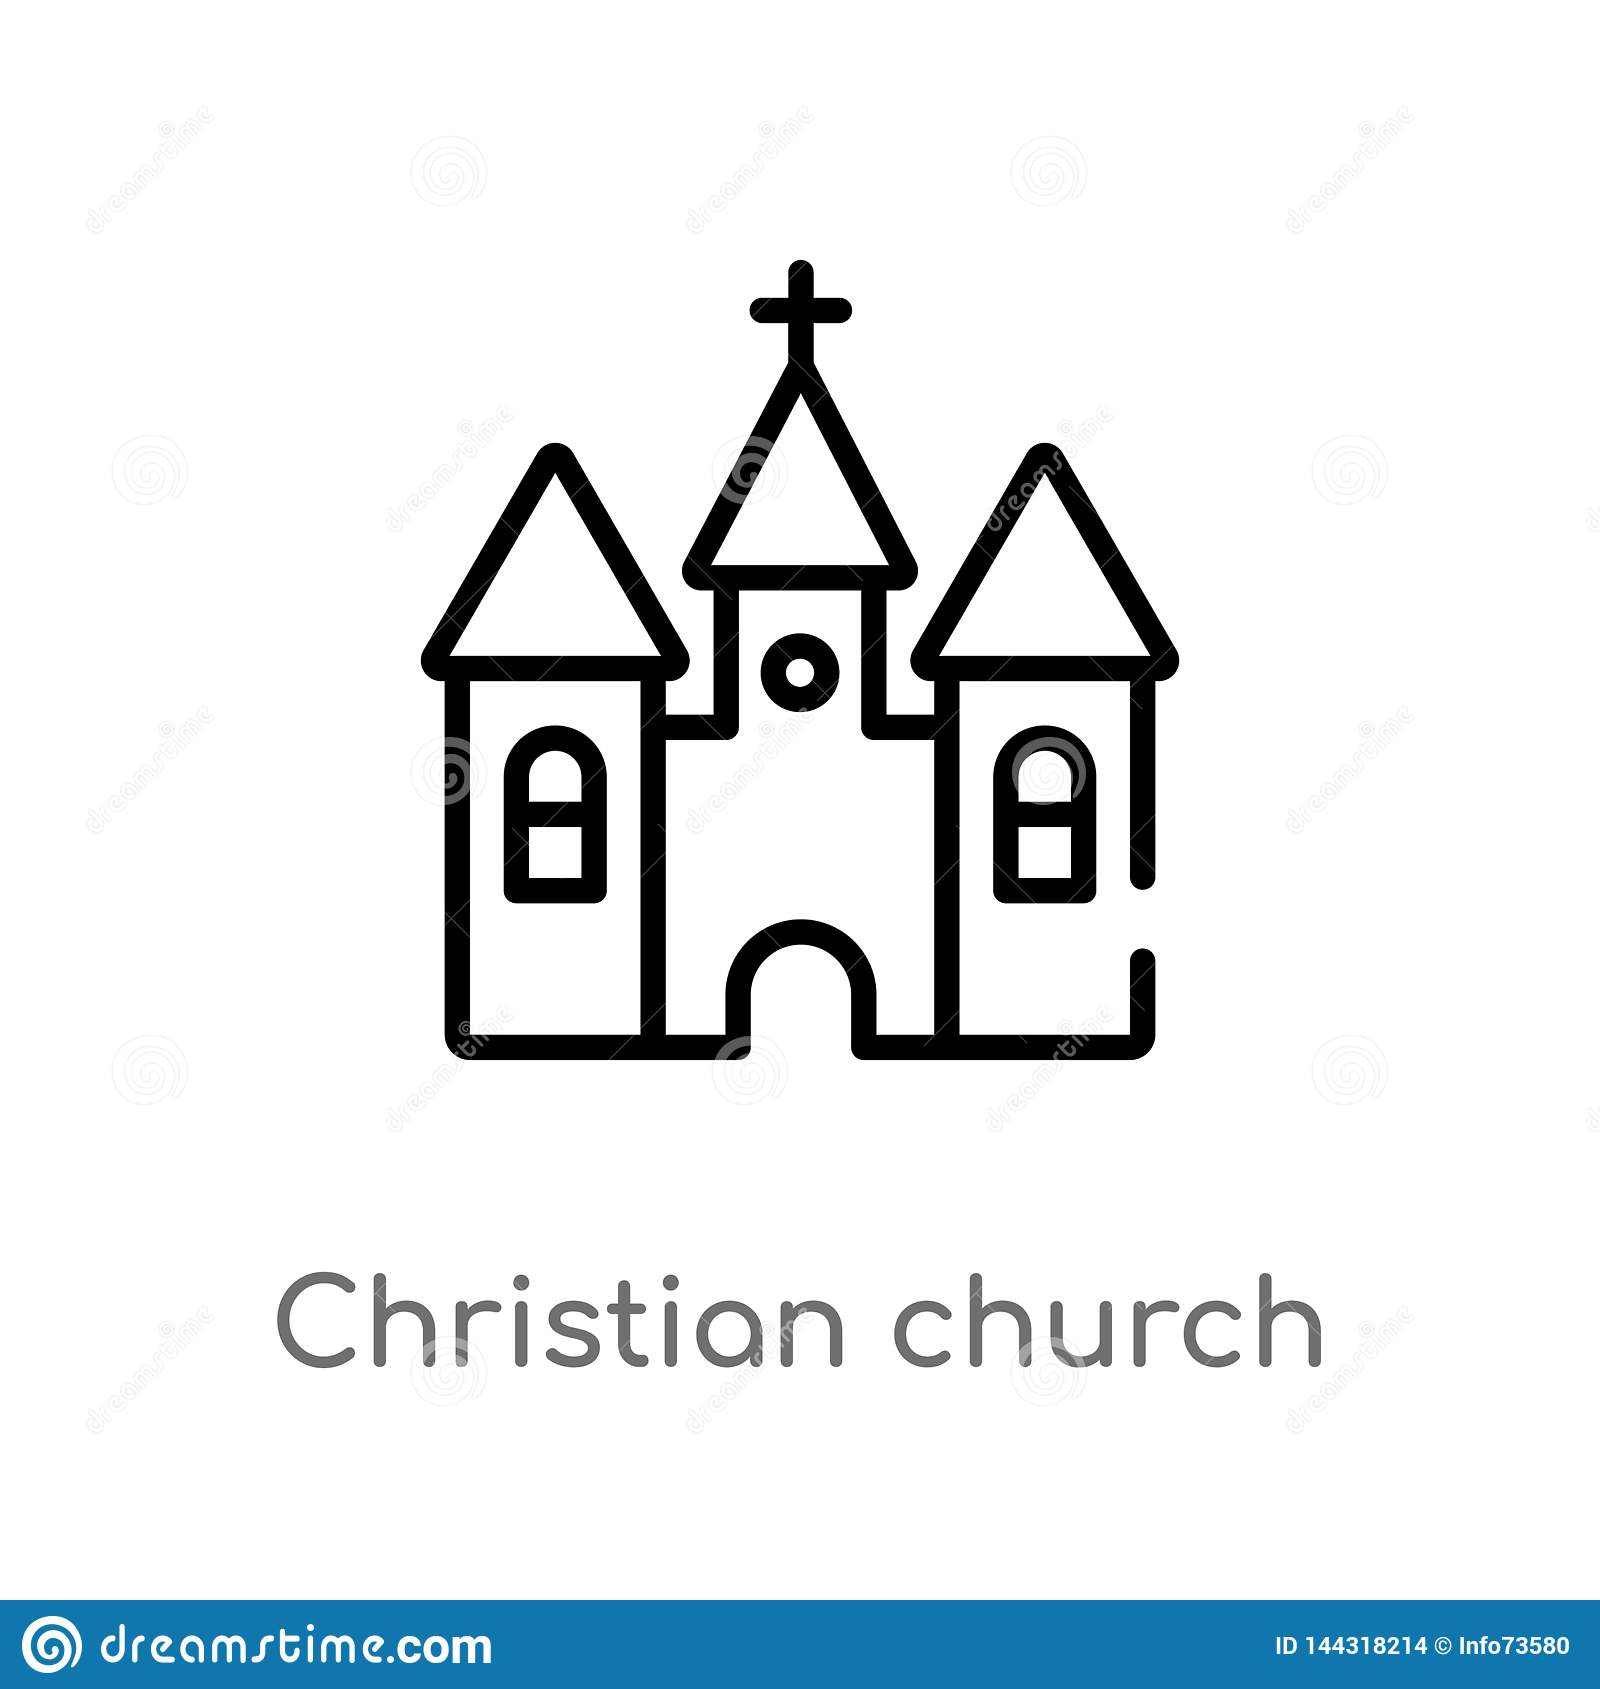 outline christian church vector icon. isolated black simple line element illustration from shapes and symbols concept. editable